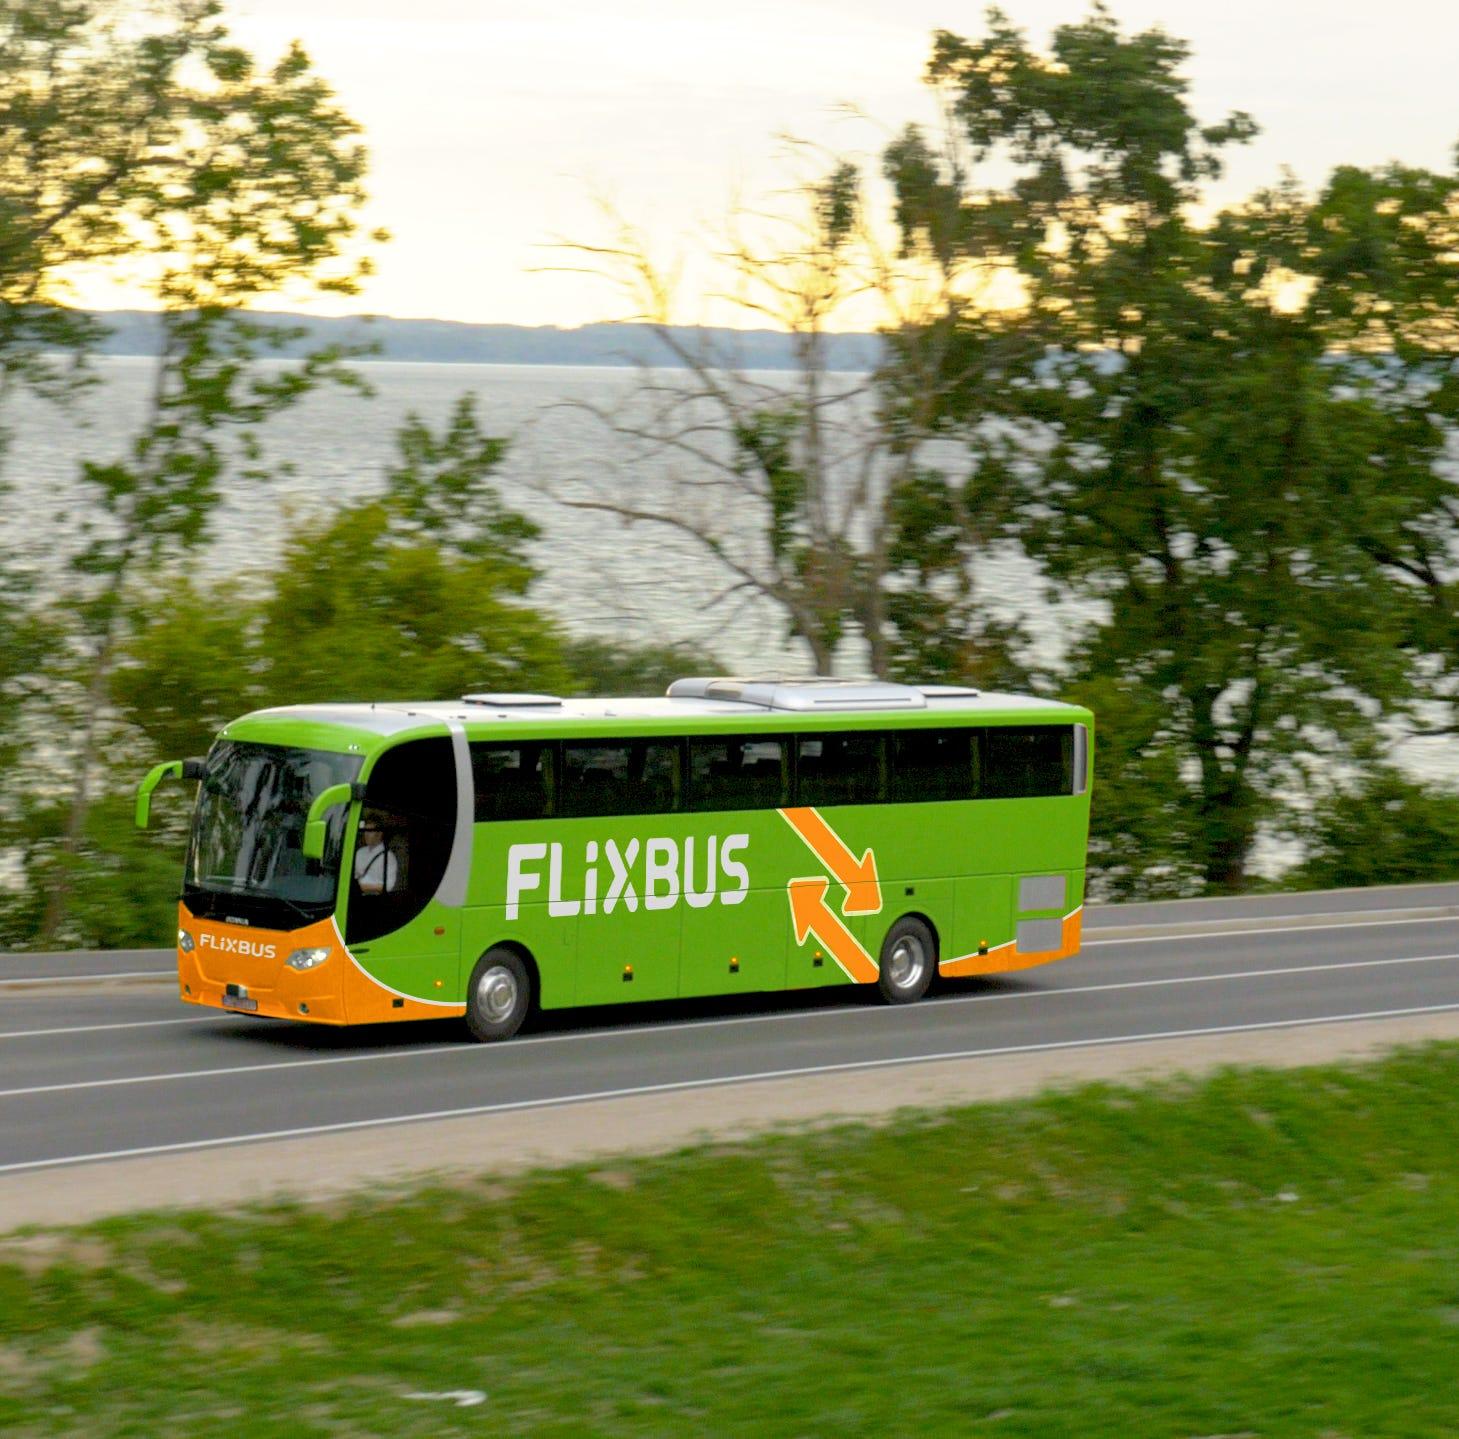 Need a ride to Coachella, Stagecoach? FlixBus launches festival routes from L.A., Phoenix